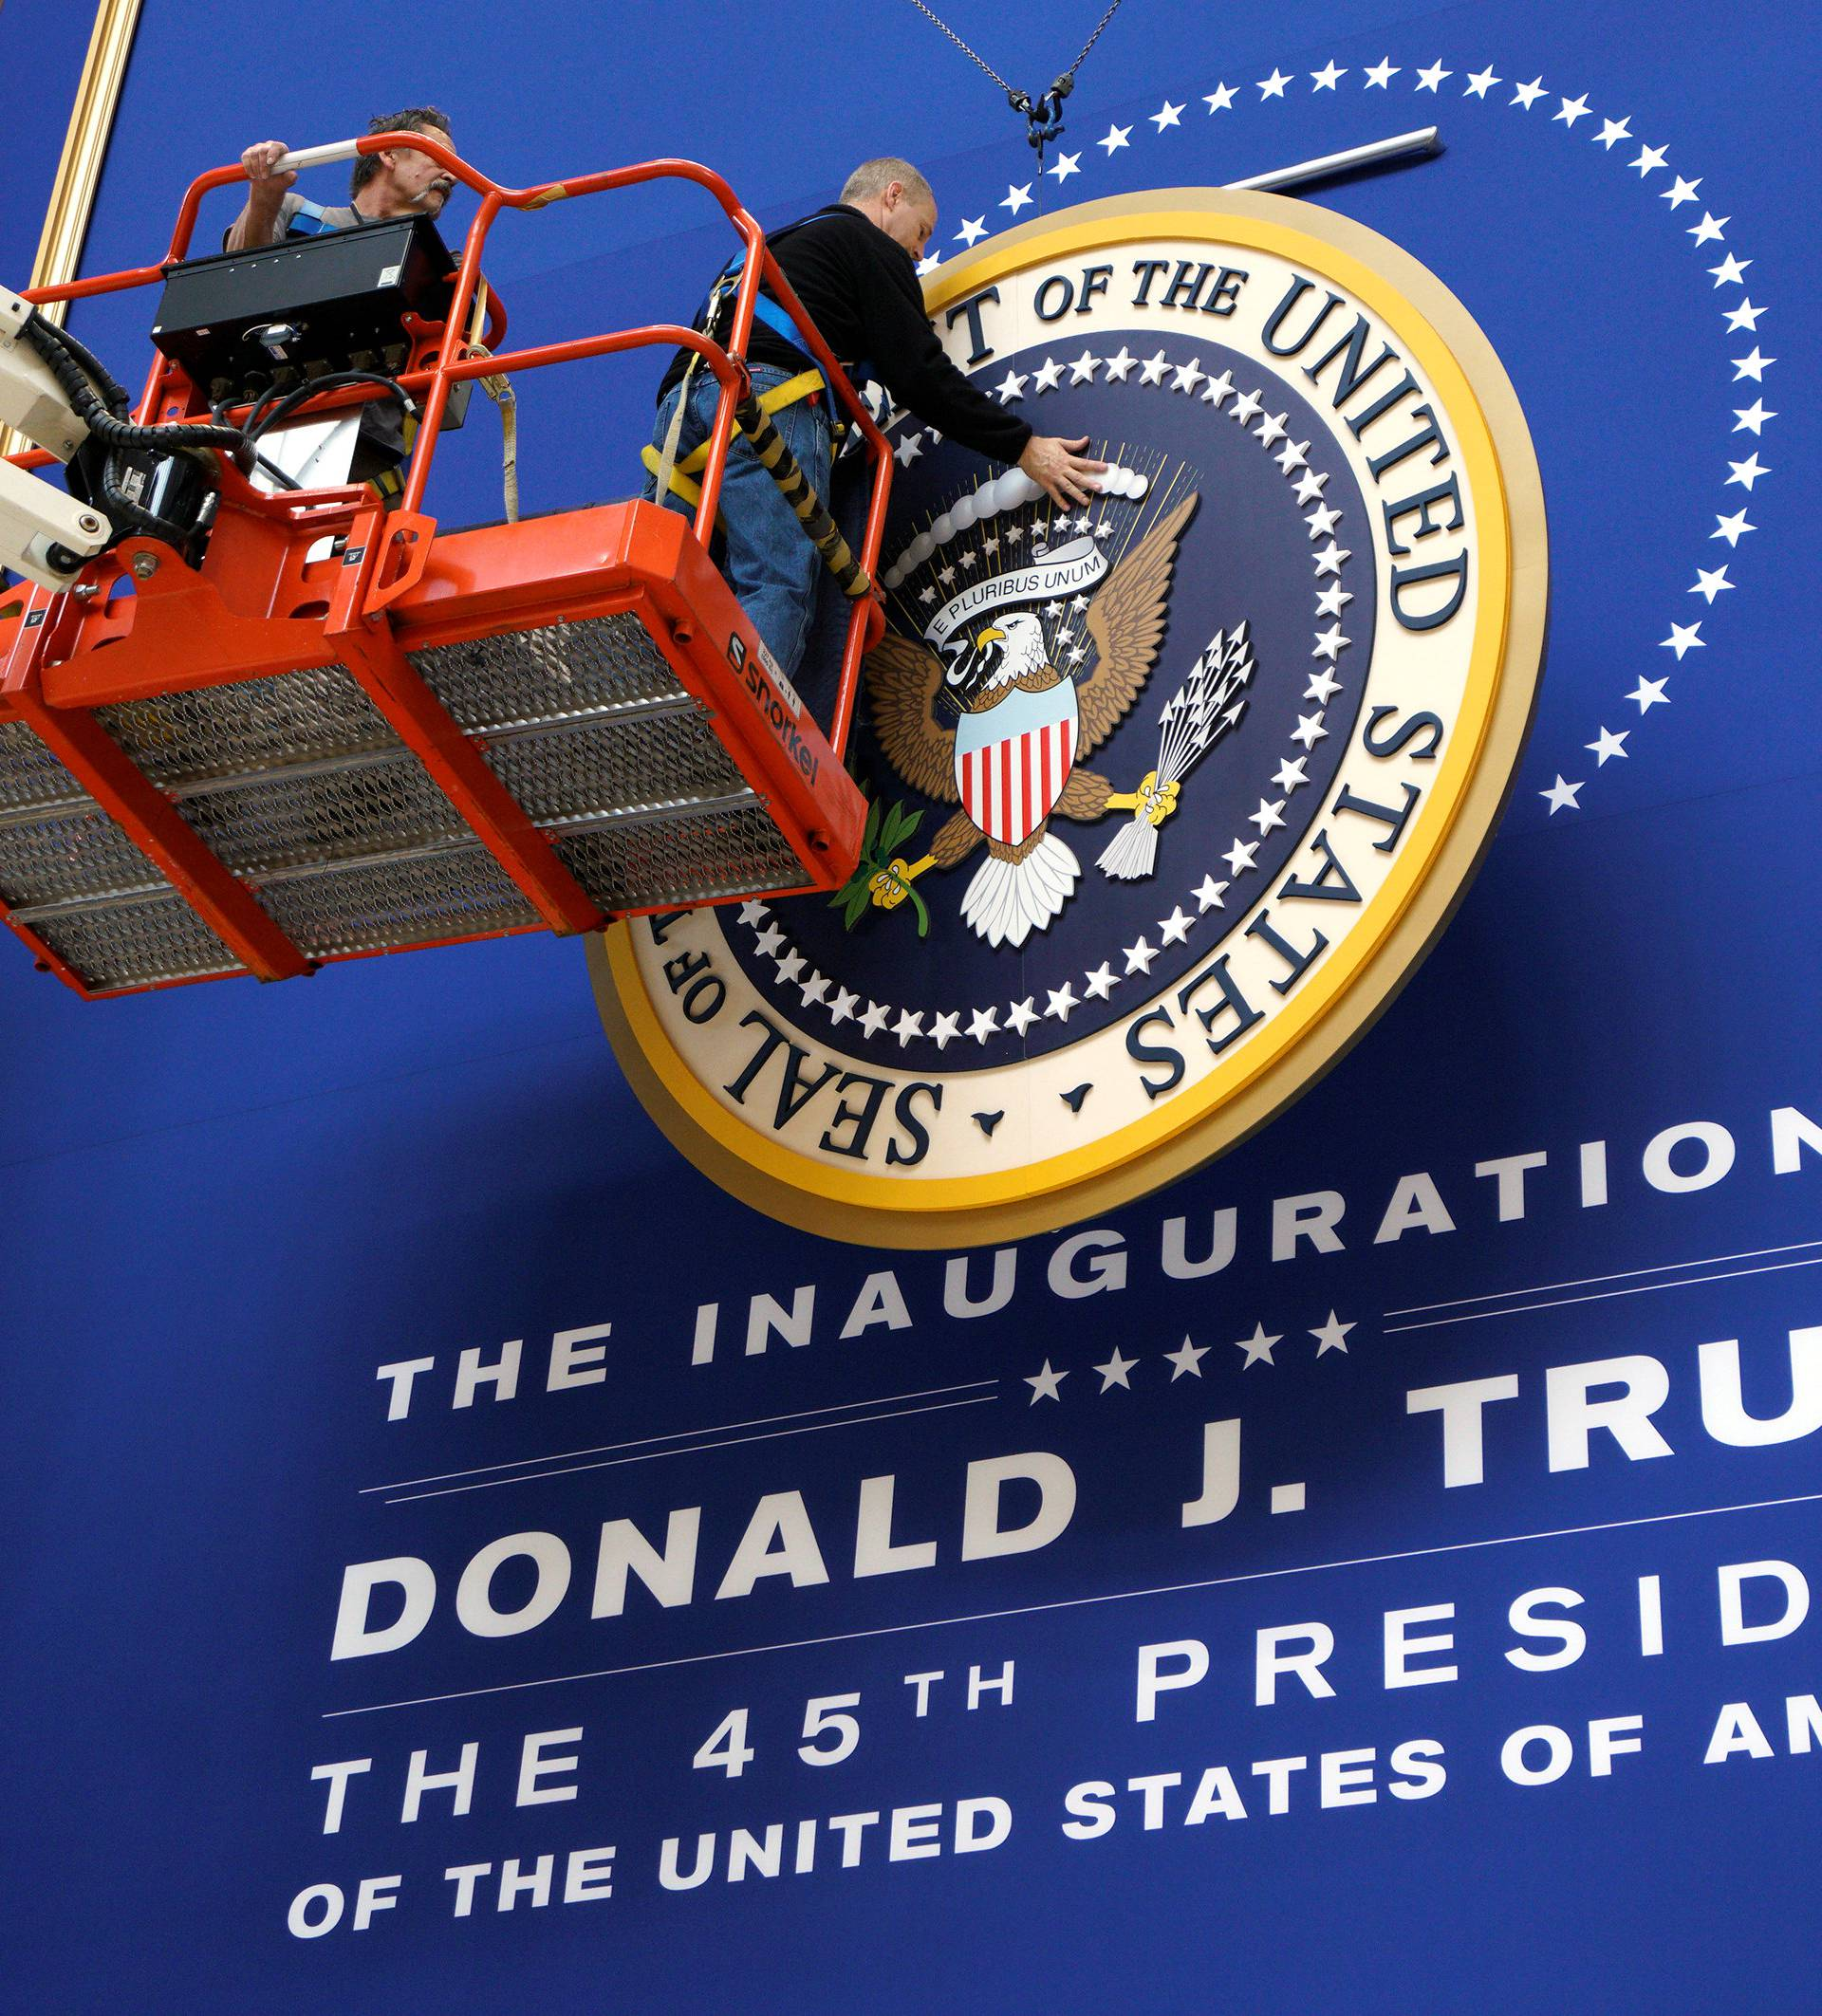 Workers install the presidential seal at the site of the Commander in Chief inaugural ball for President-elect Donald Trump in Washington, DC